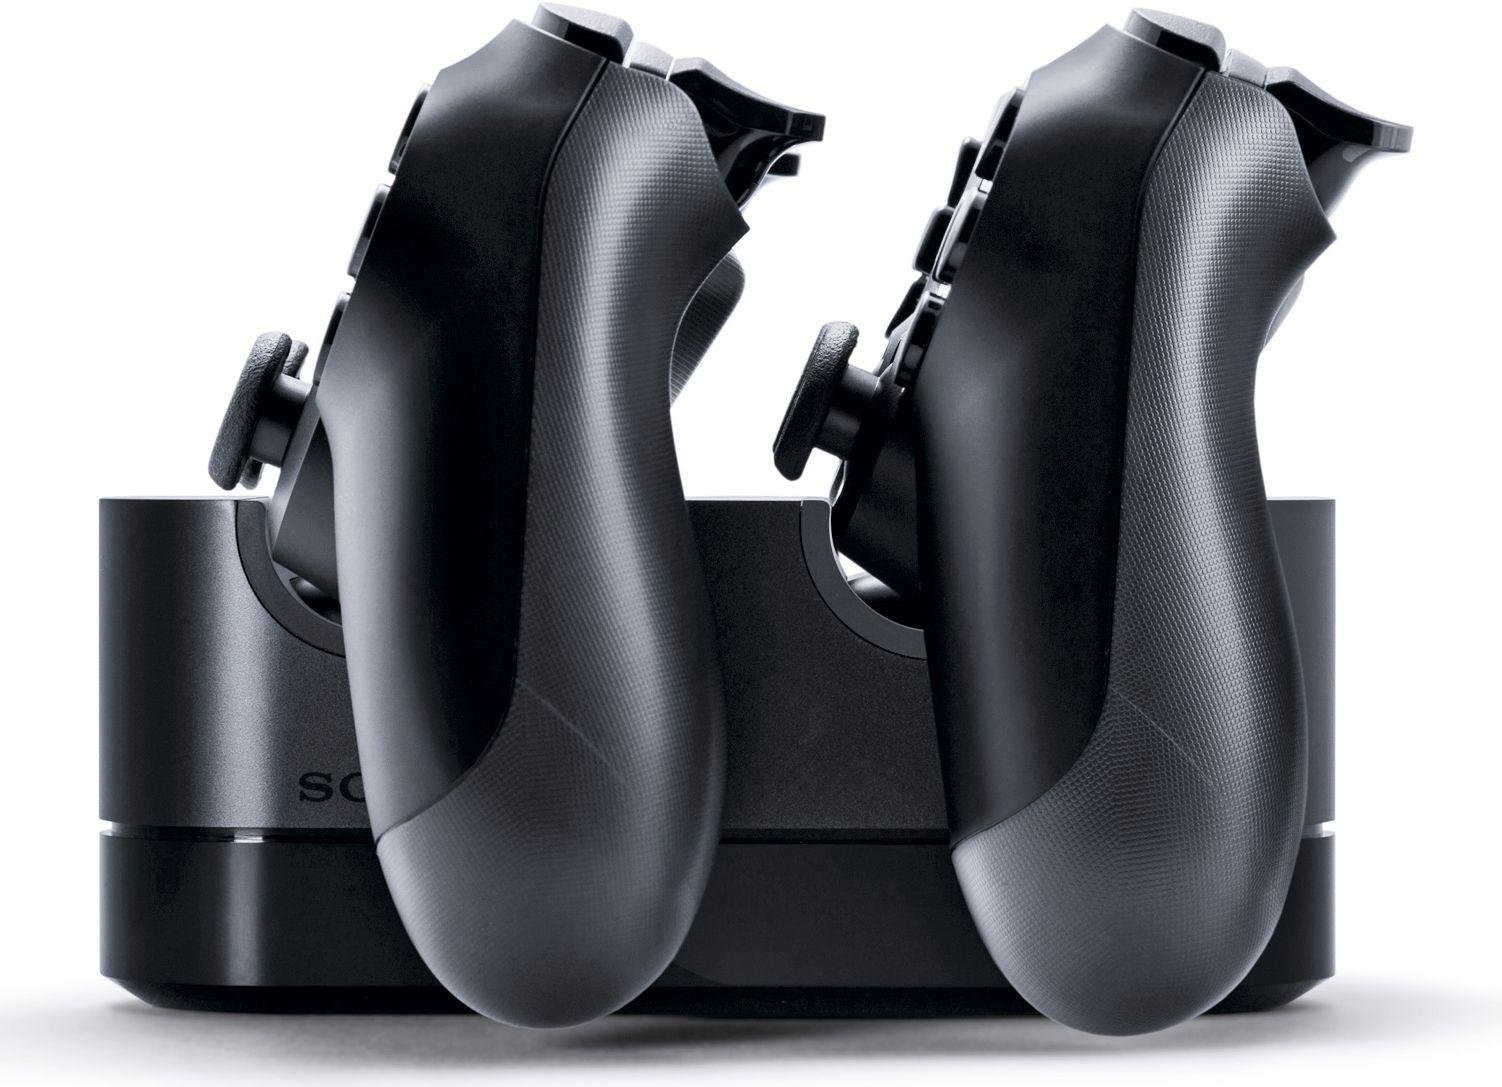 Playstation Sony PS4 DualShock Controller Charging Unit.